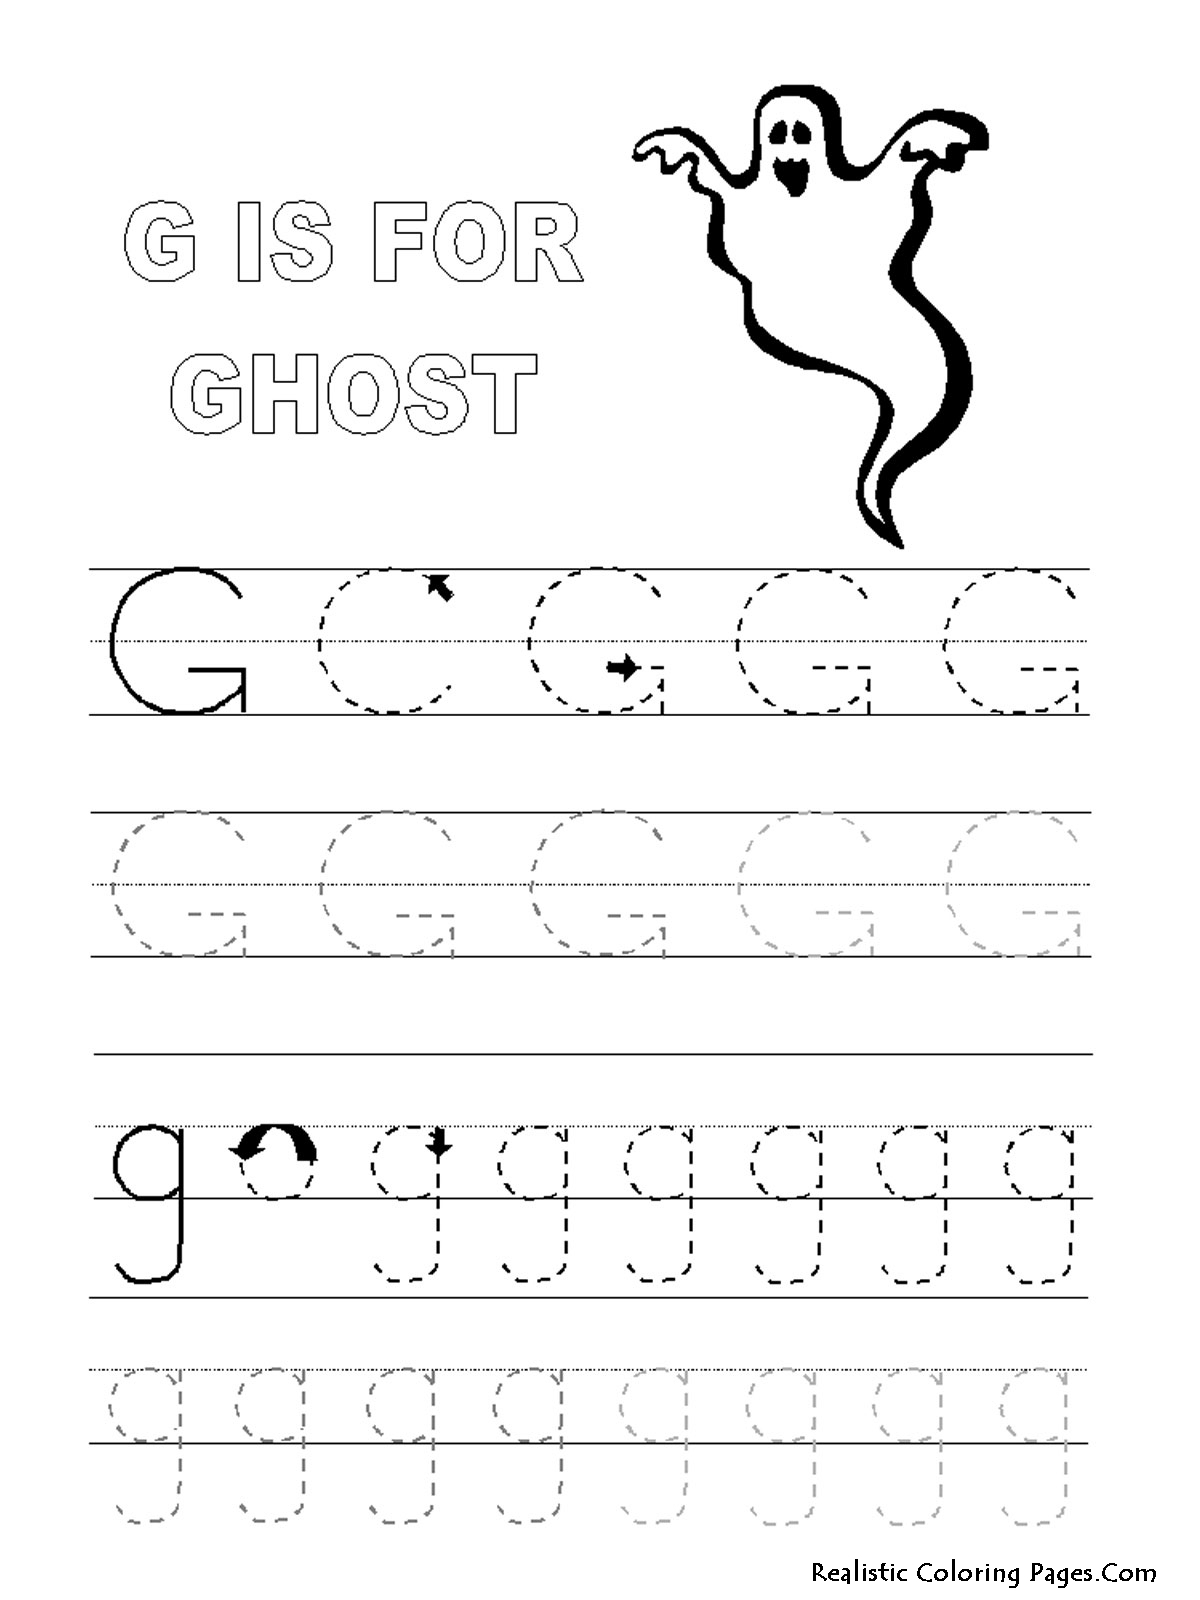 g letters alphabet coloring pages realistic coloring pages. Black Bedroom Furniture Sets. Home Design Ideas